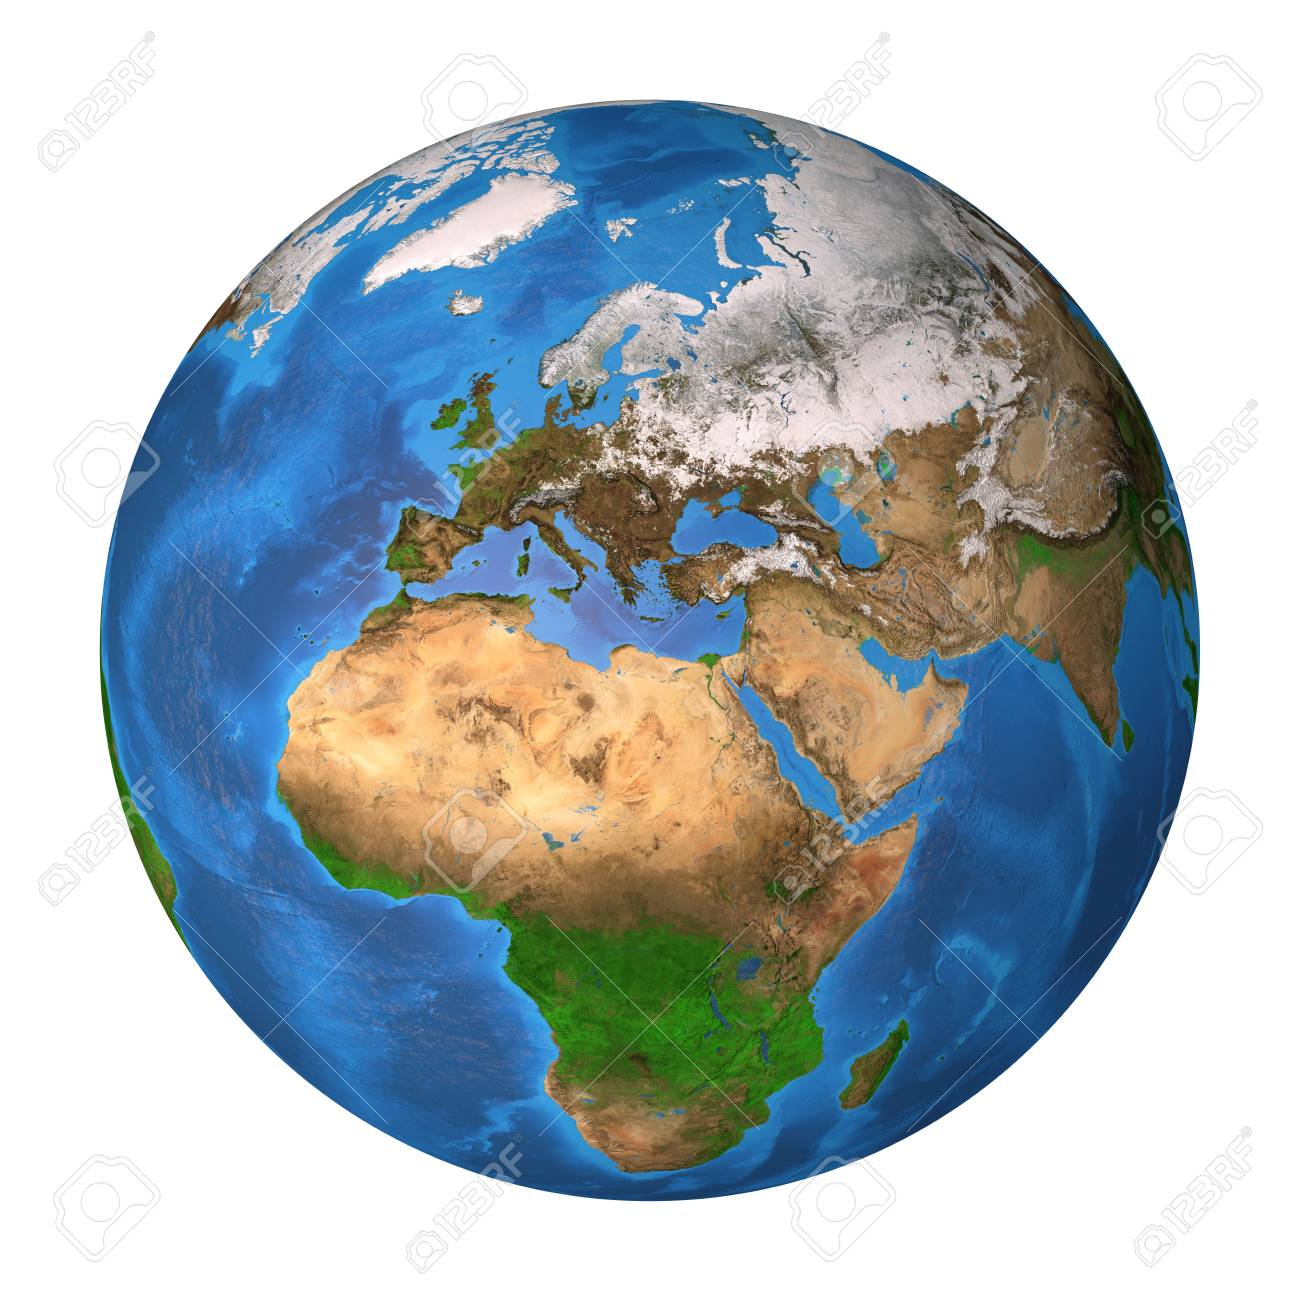 Realistic Satellite View Of Planet Earth In High Resolution Stock